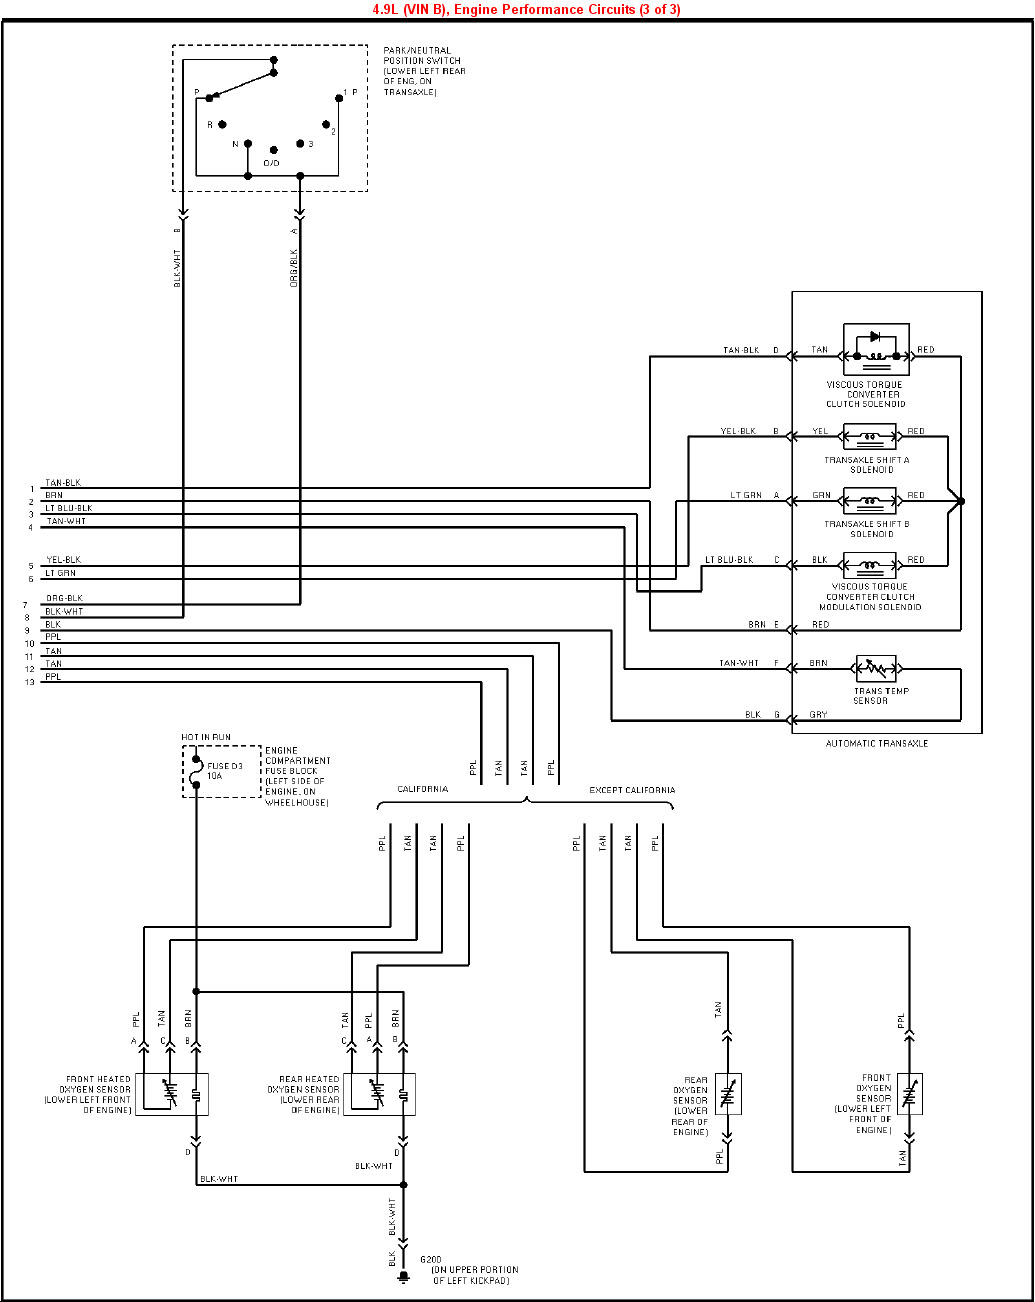 1995 Cadillac Deville 4.9L VIN B PCM (3 of 3) index of gearhead efi wiring 92 cadillac deville wiring diagrams at bayanpartner.co